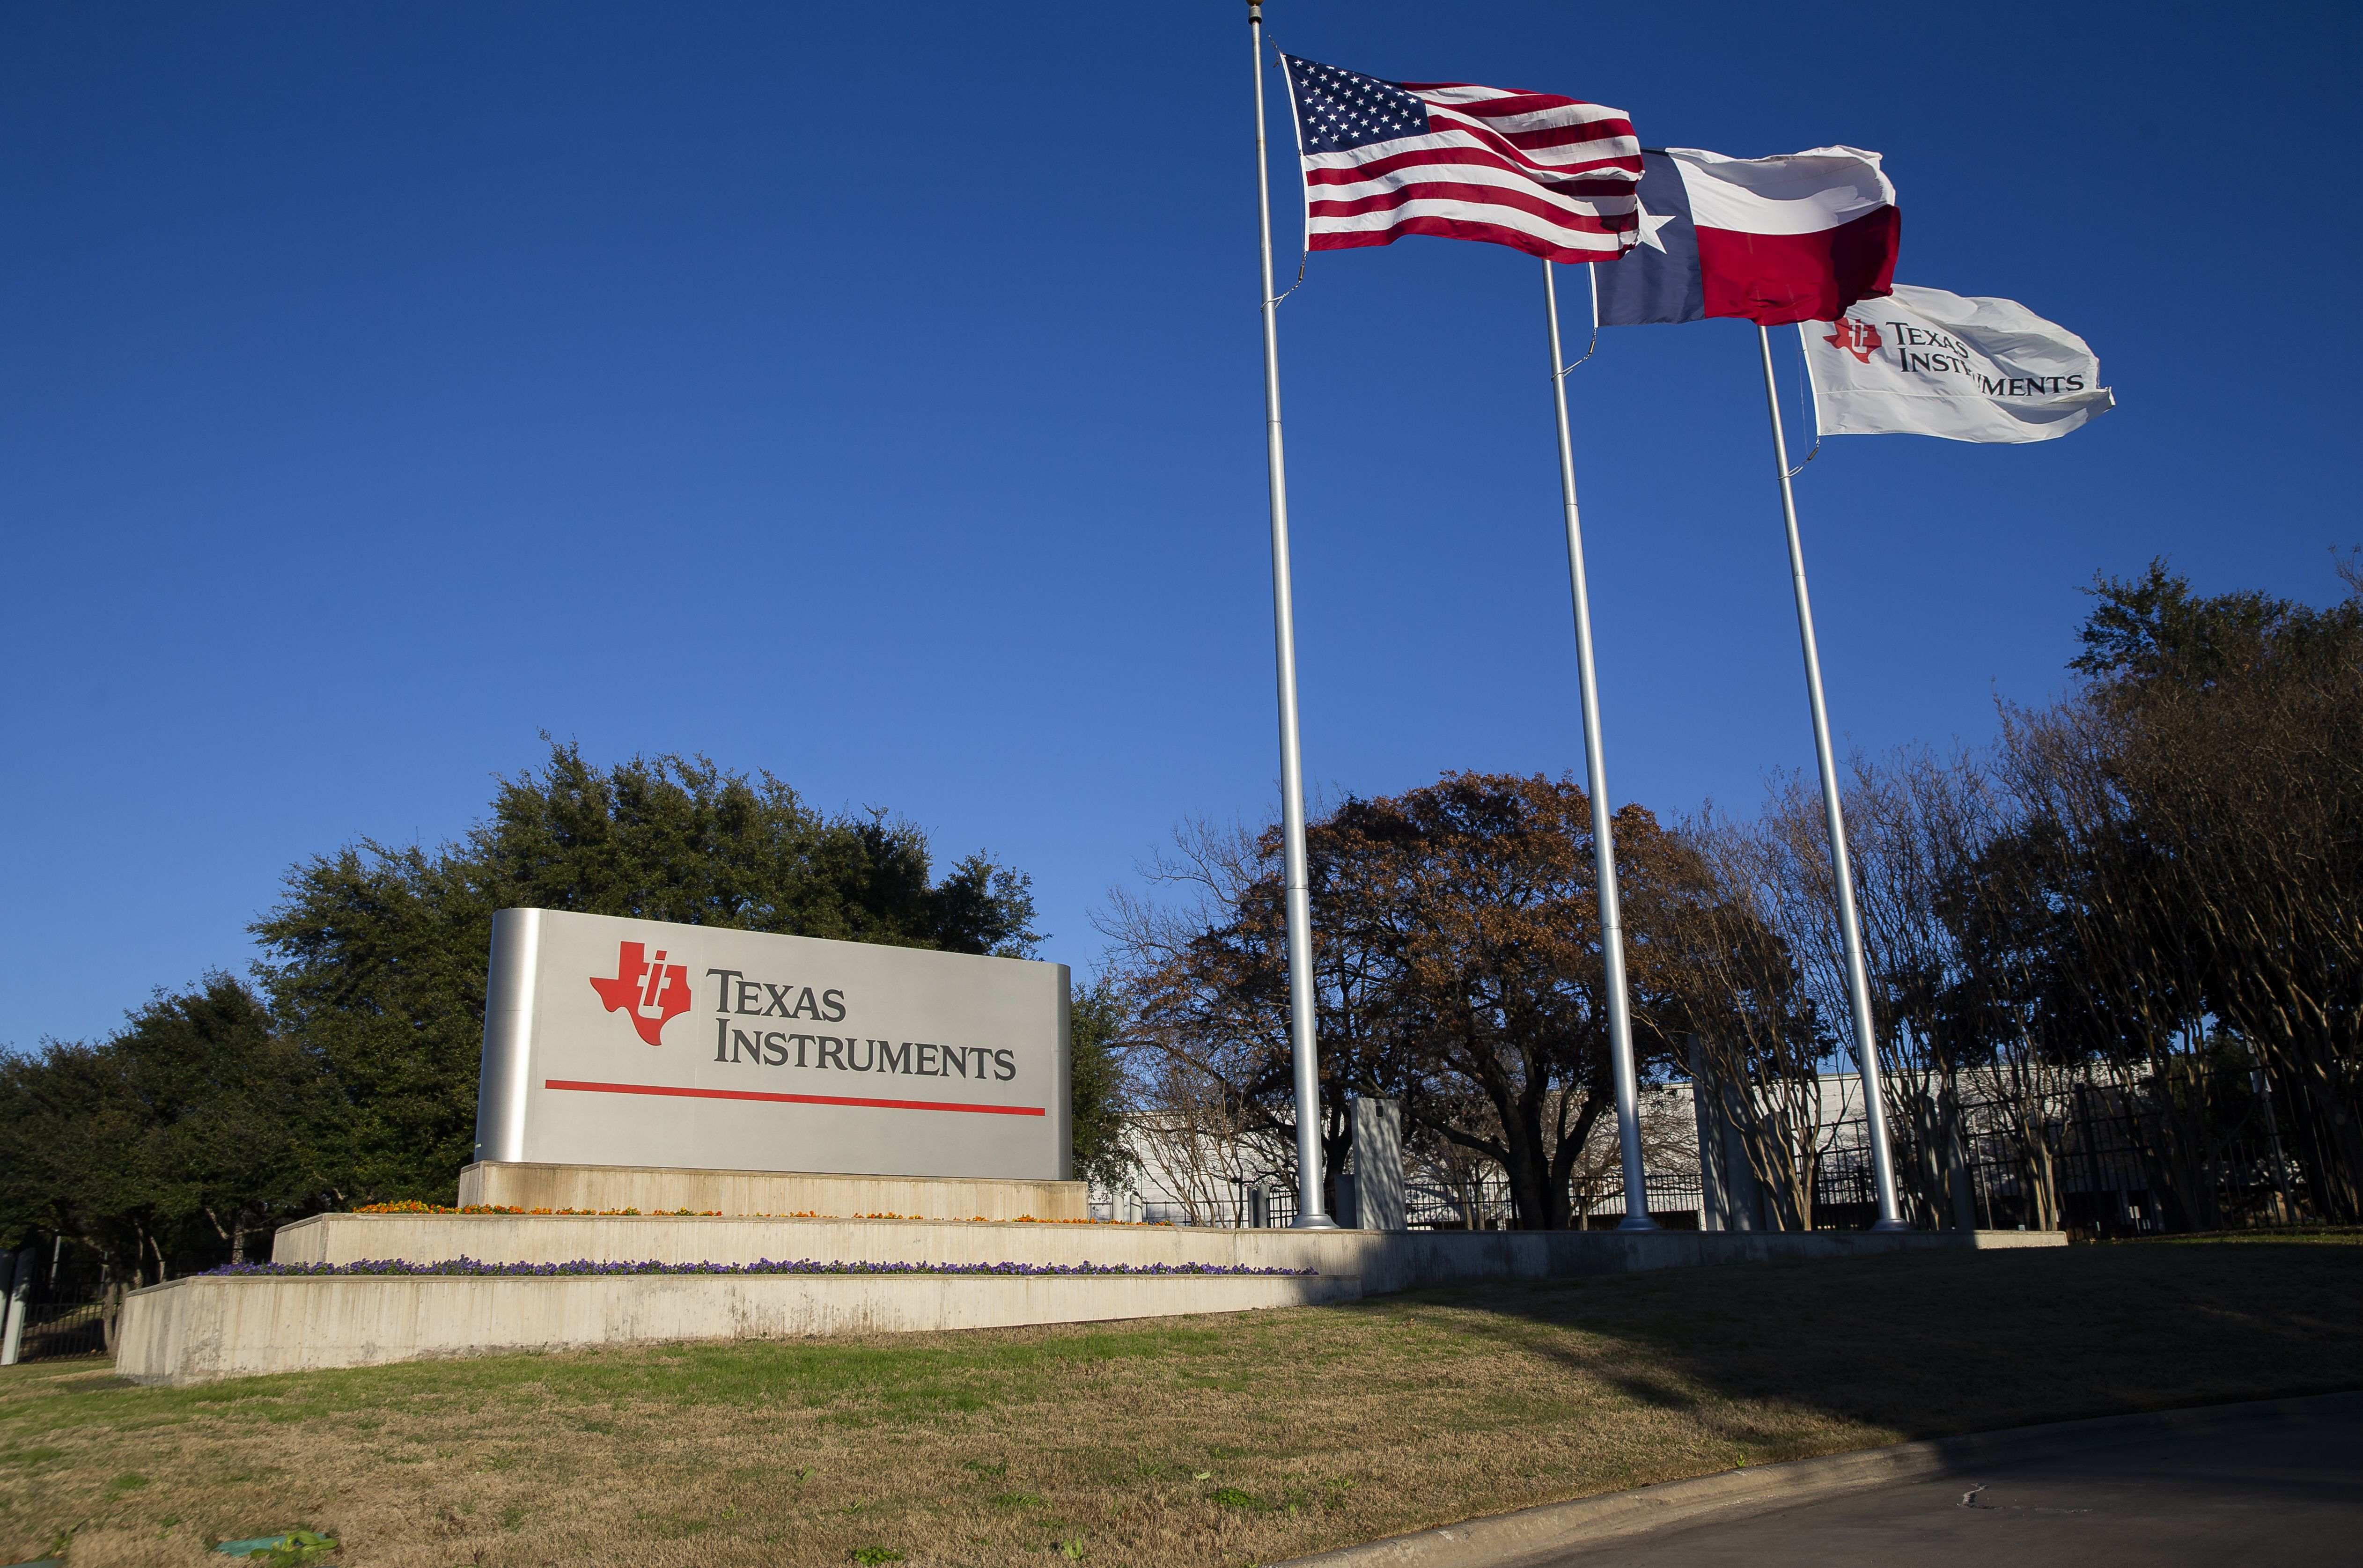 texas instruments dallas map Texas Instruments To Close Two Dallas Area Factories In The Next